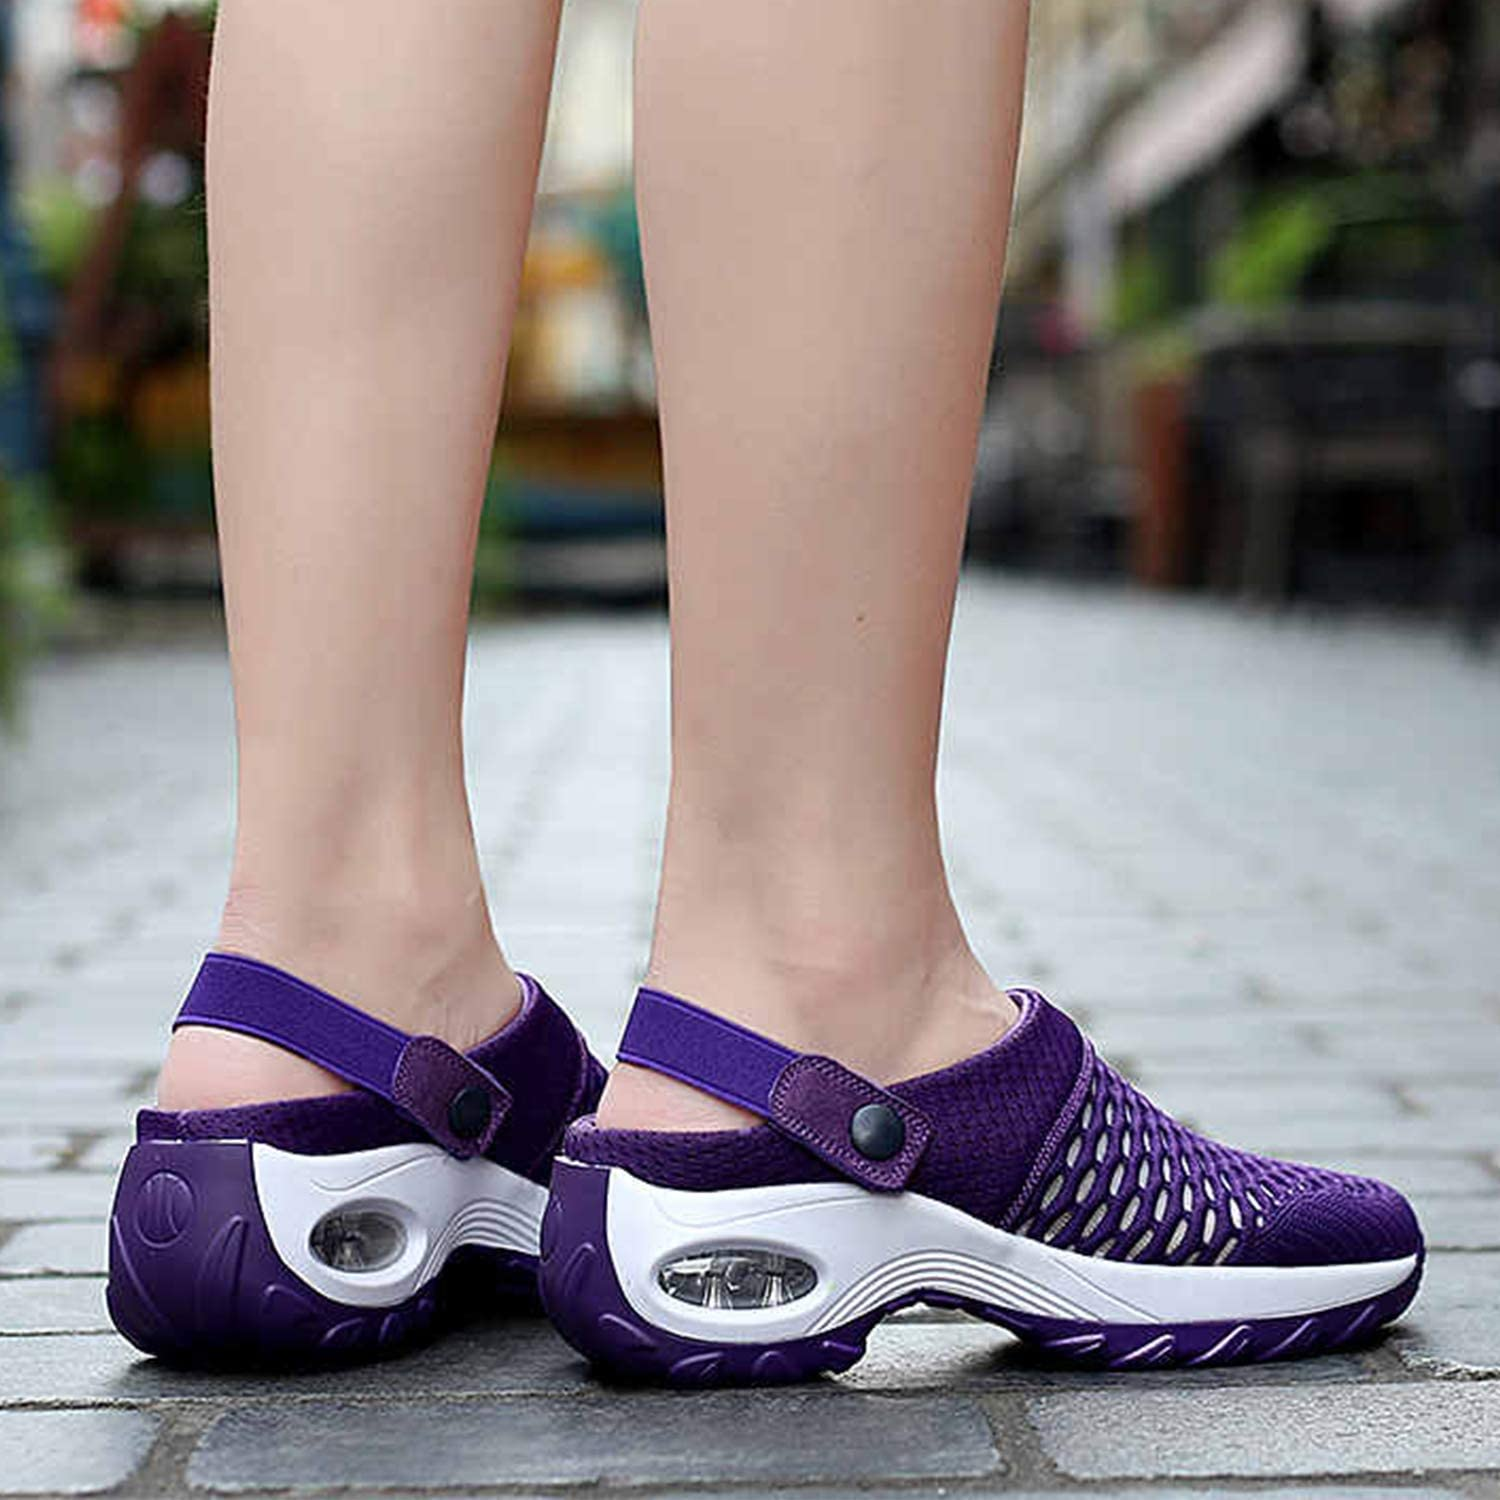 Sponge Cake Shoes Fresh and Breathable Platform Shoes Raised Breathable mesh Fabric Fresh Womens Sandals